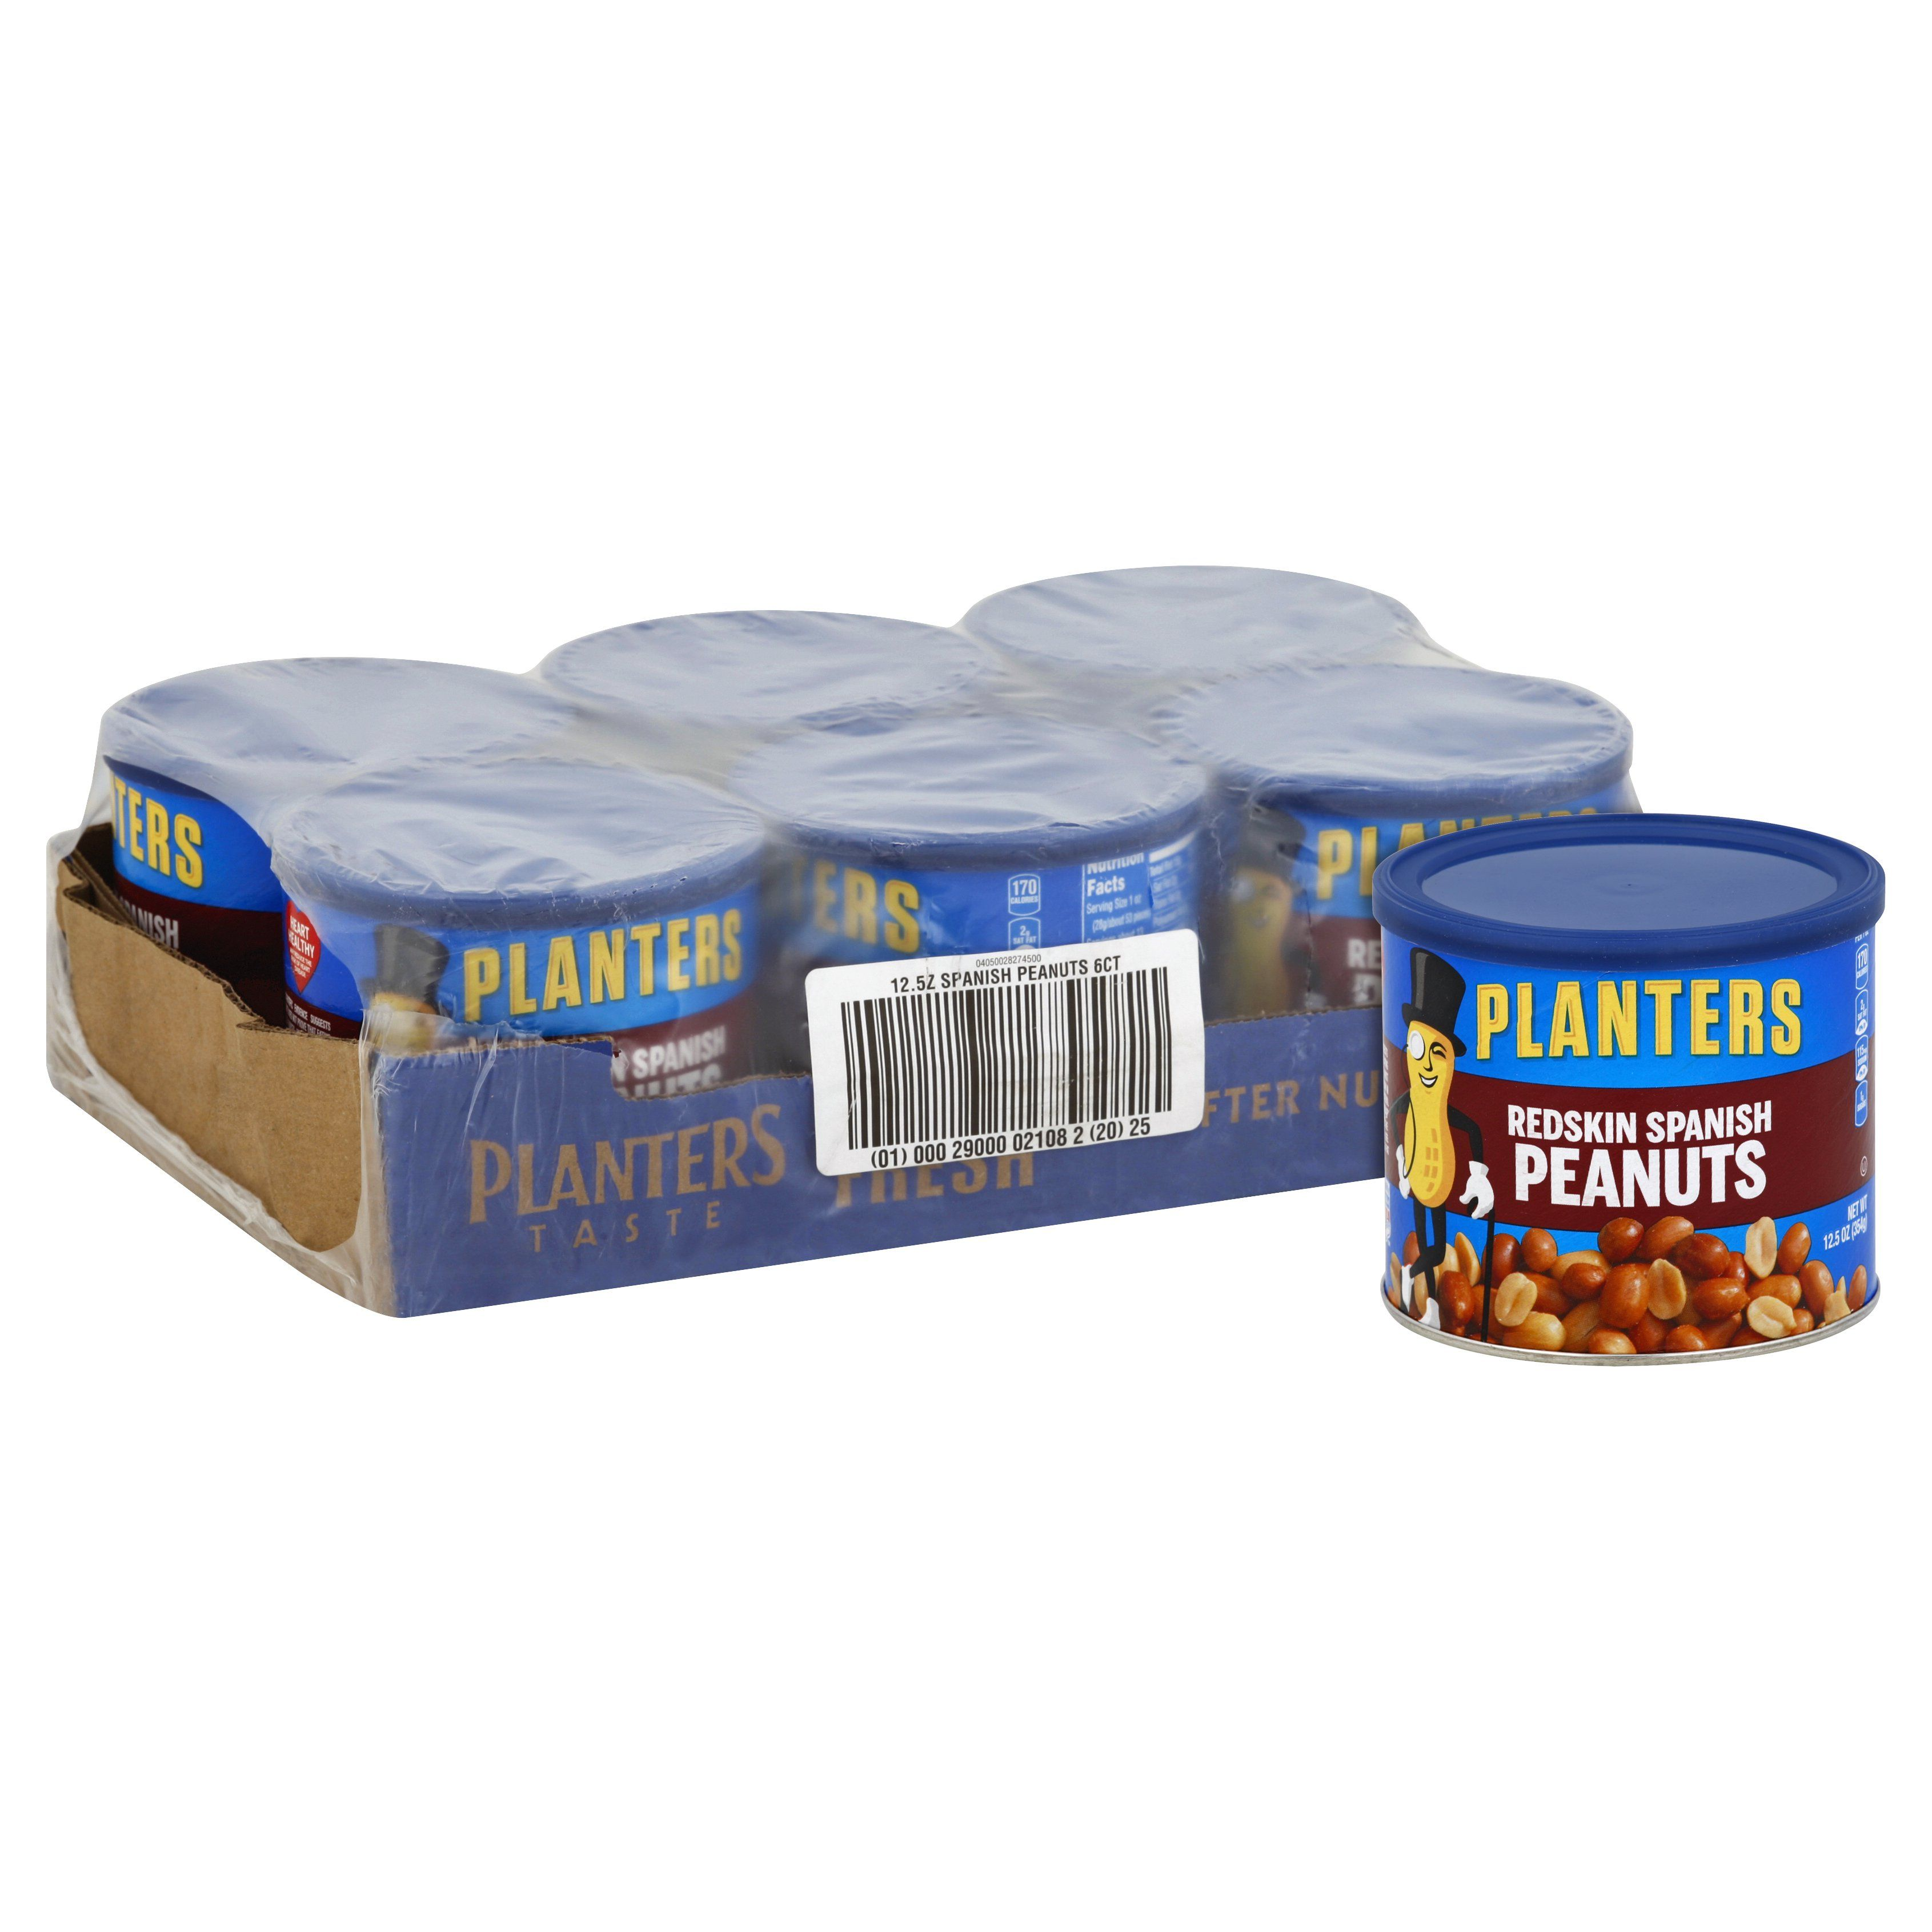 Planters Peanuts Planters Redskin Spanish 12.5 Oz-6 Count